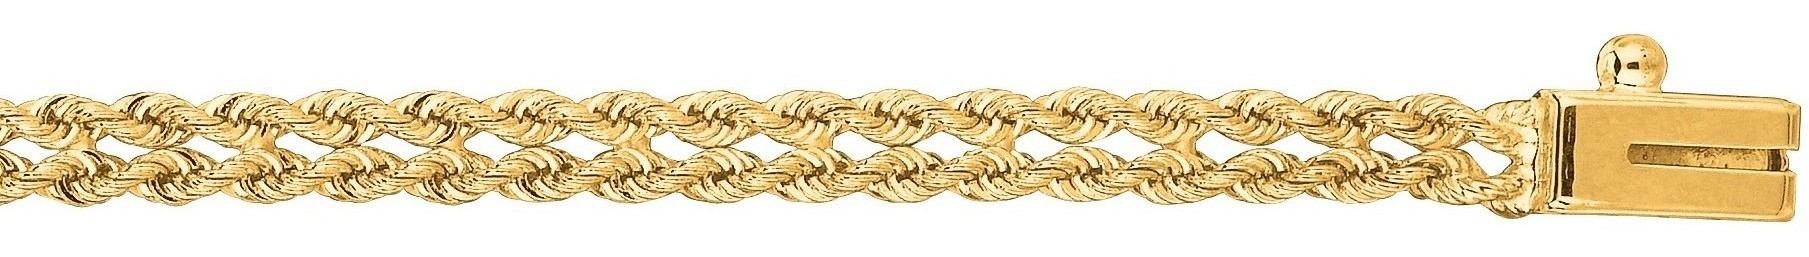 "8"" 14K Yellow Gold 3.0mm (1/8"") Polished Diamond Cut Multi Line Rope Chain w/ Box Catch Clasp"